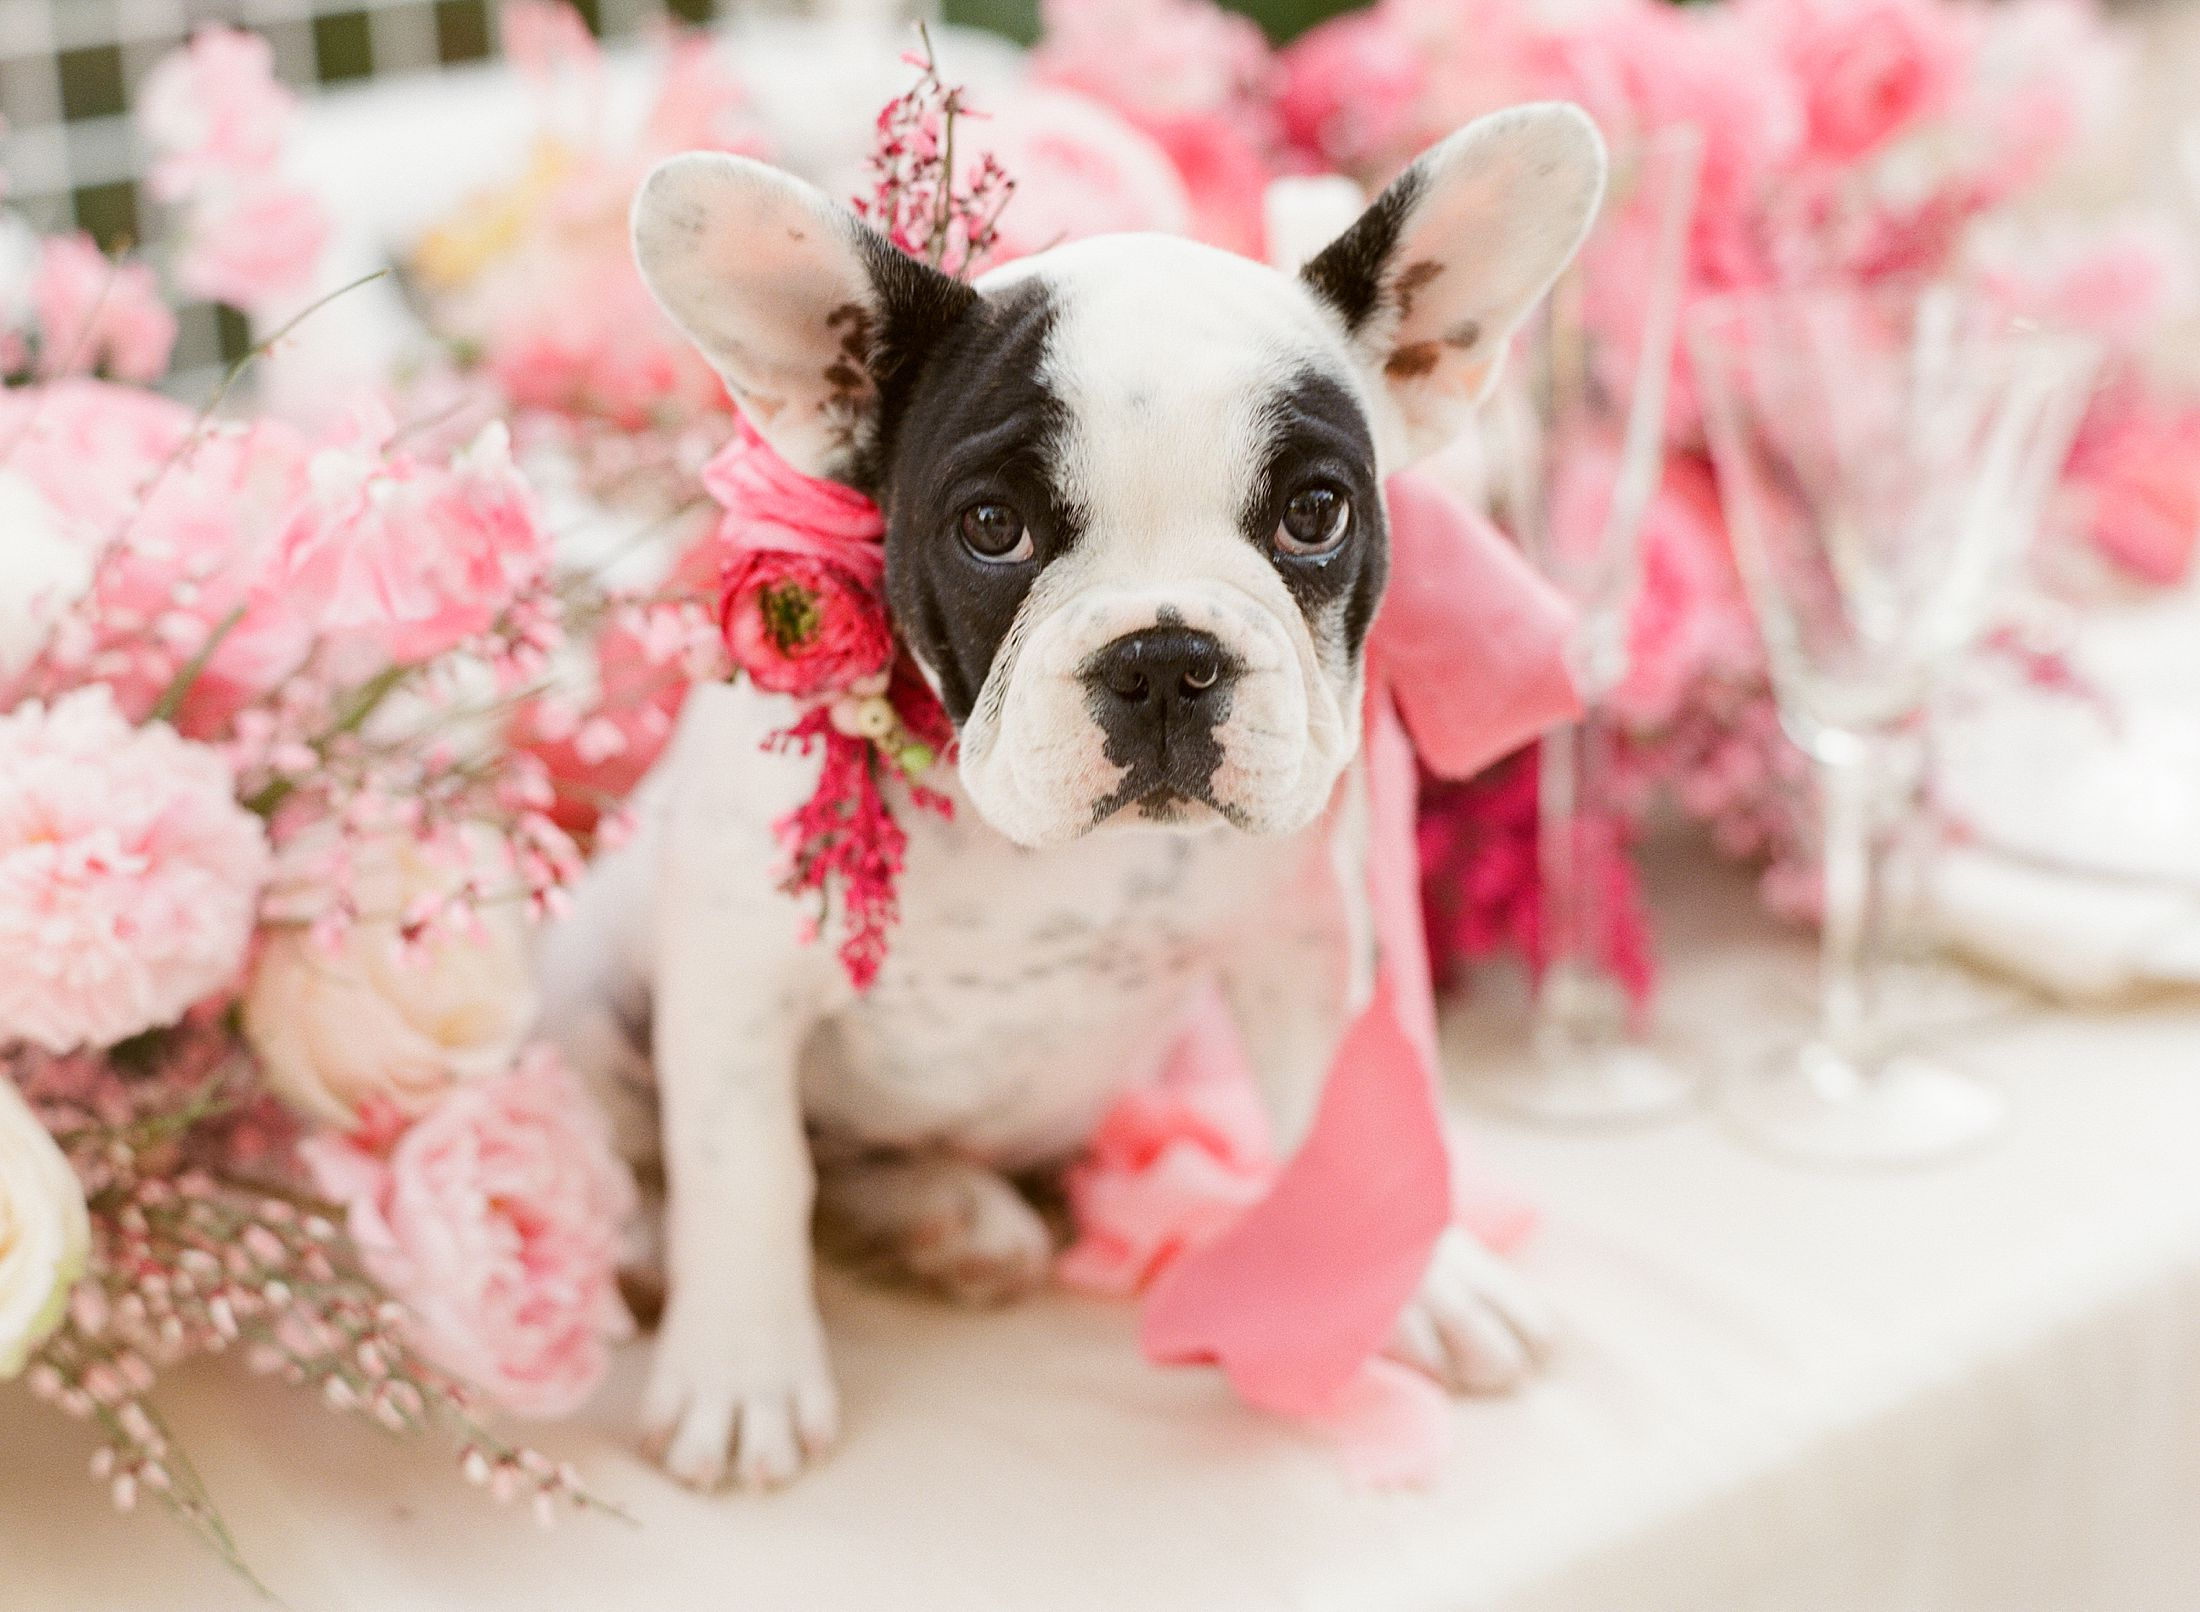 Pink Ombre Wedding Inspiration on Style Me Pretty - Royal Palms Wedding - Scottsdale Wedding - Ashley Baumgartner - Bloom and Blueprint - Wedding Puppies - Bulldog Puppies_0009.jpg